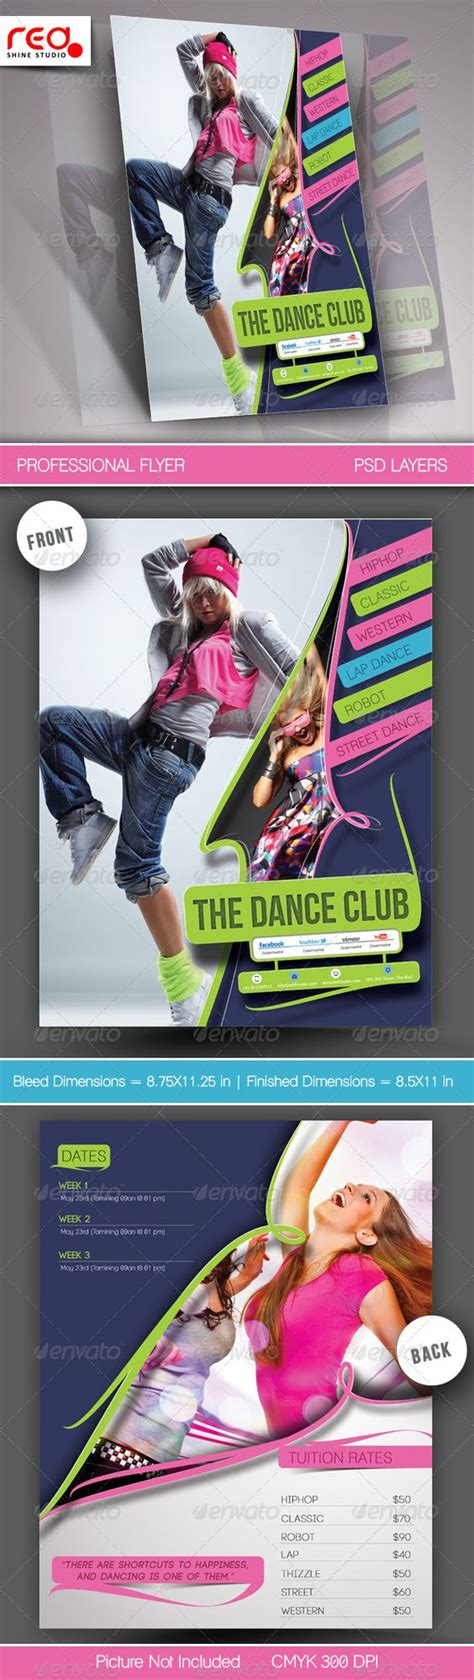 dance academy flyer poster template 2 texts the